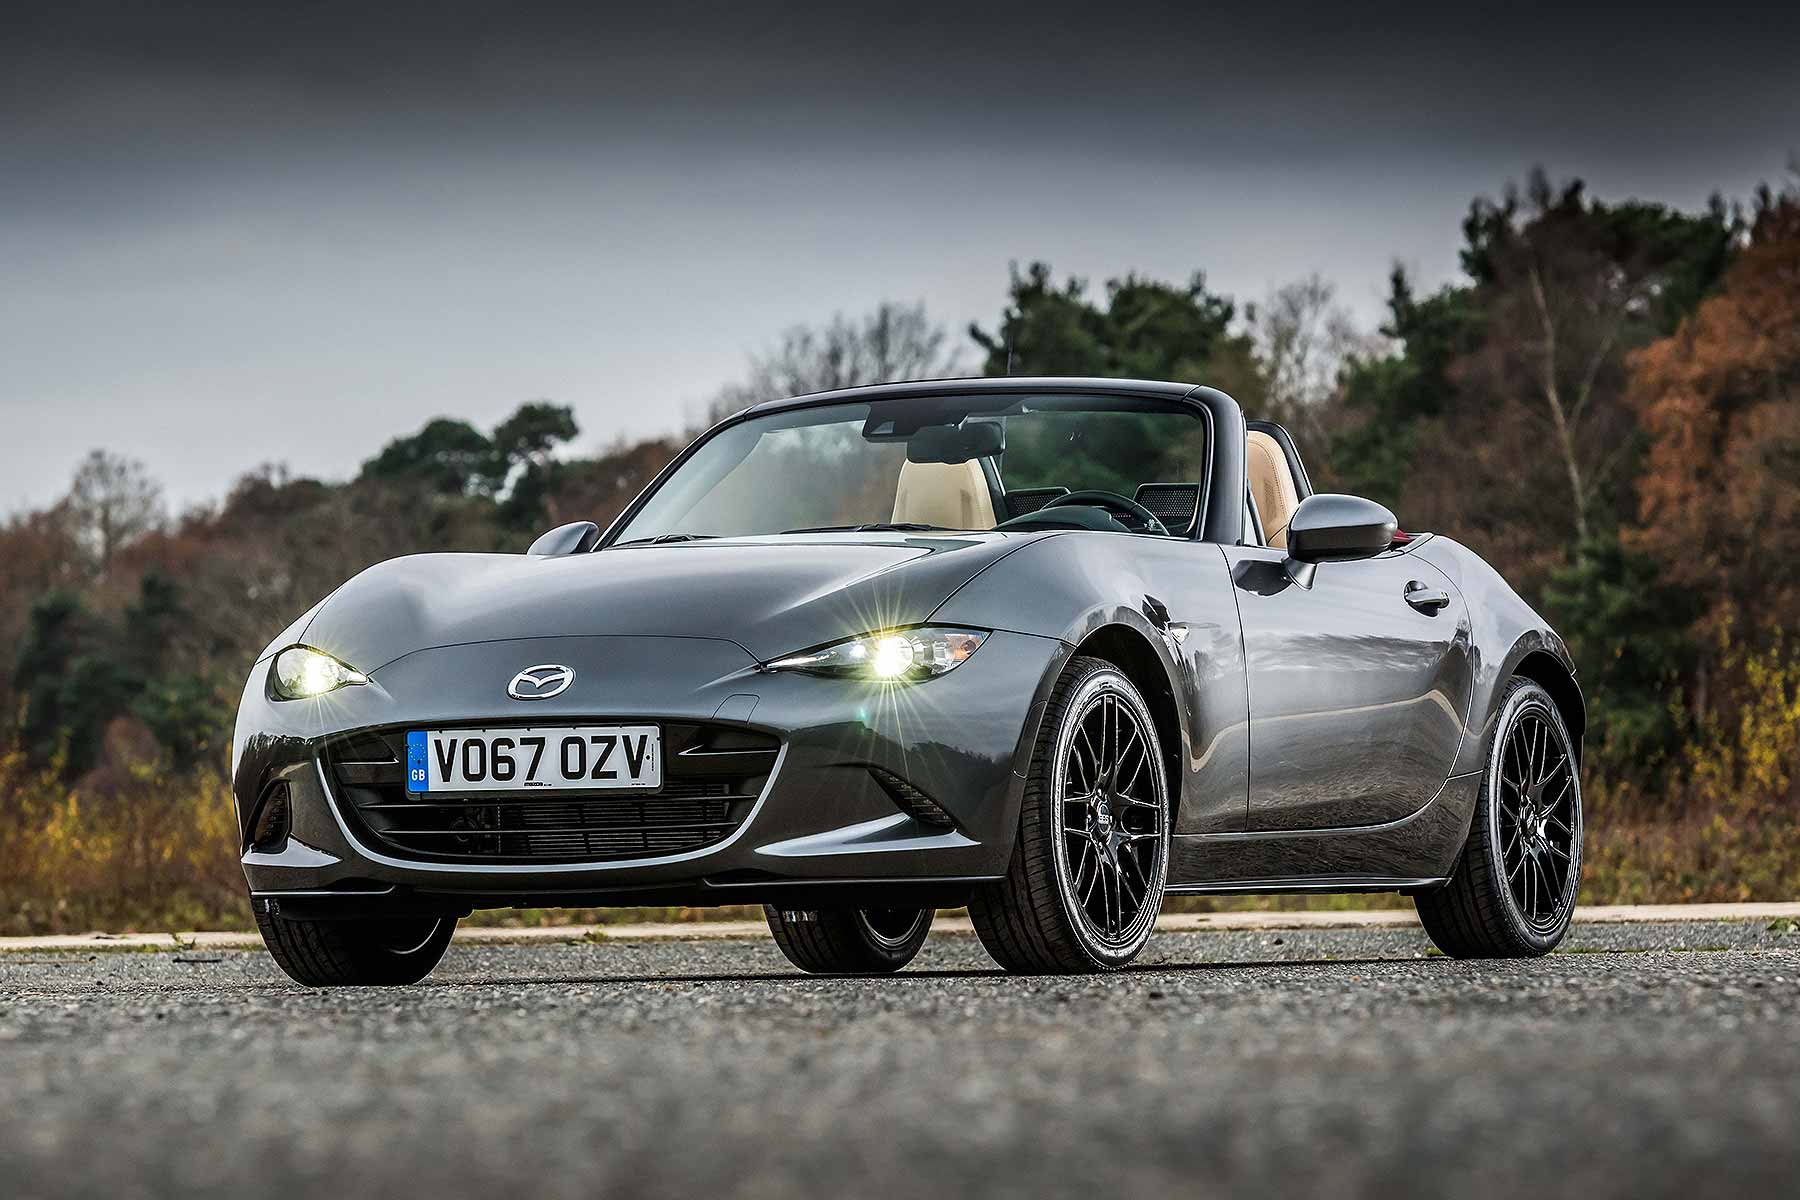 new mazda mx 5 z sport limited edition costs 25 595 motoring research. Black Bedroom Furniture Sets. Home Design Ideas